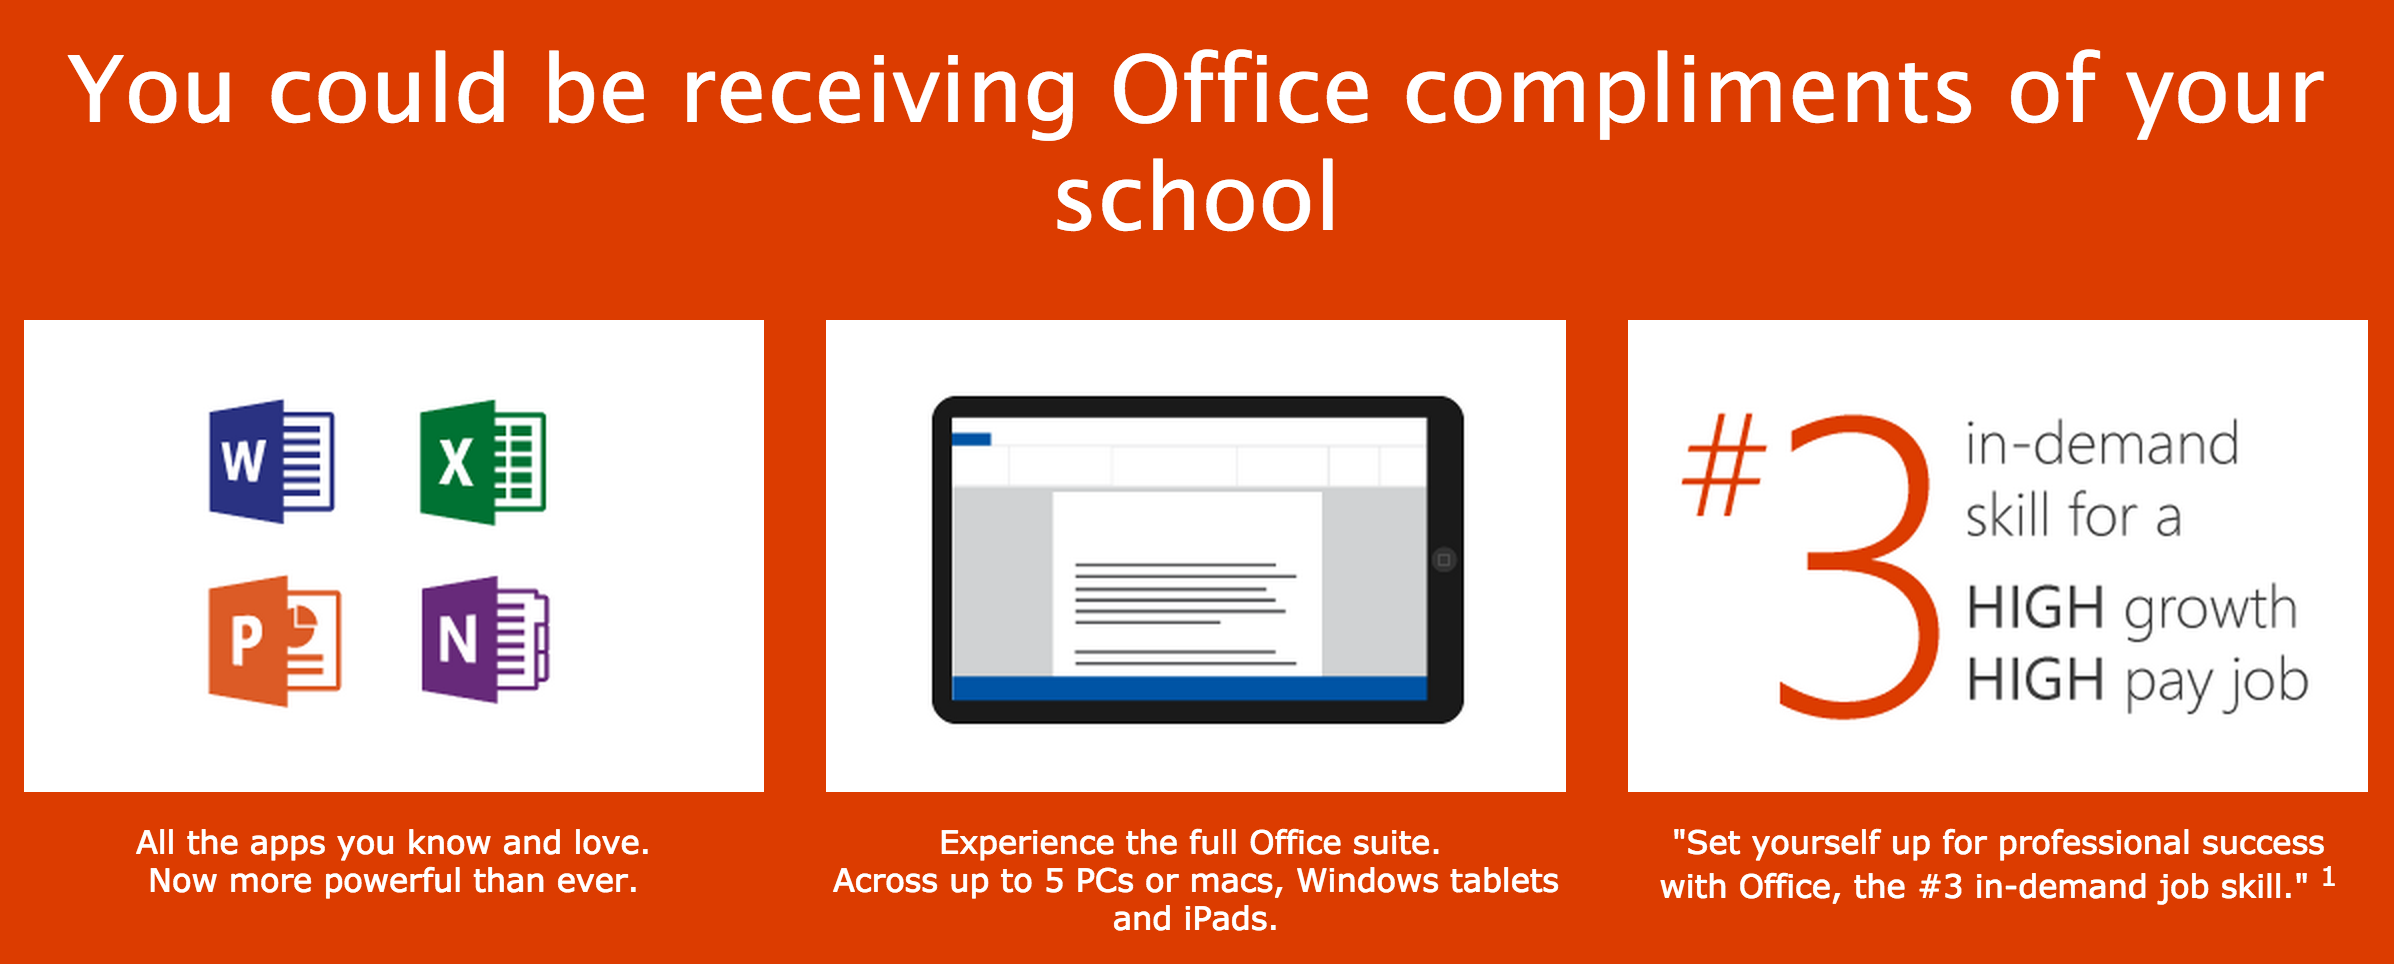 microsoft has announced that most canadian students over 4 million from elementary school to university now have free access to the entire office 365